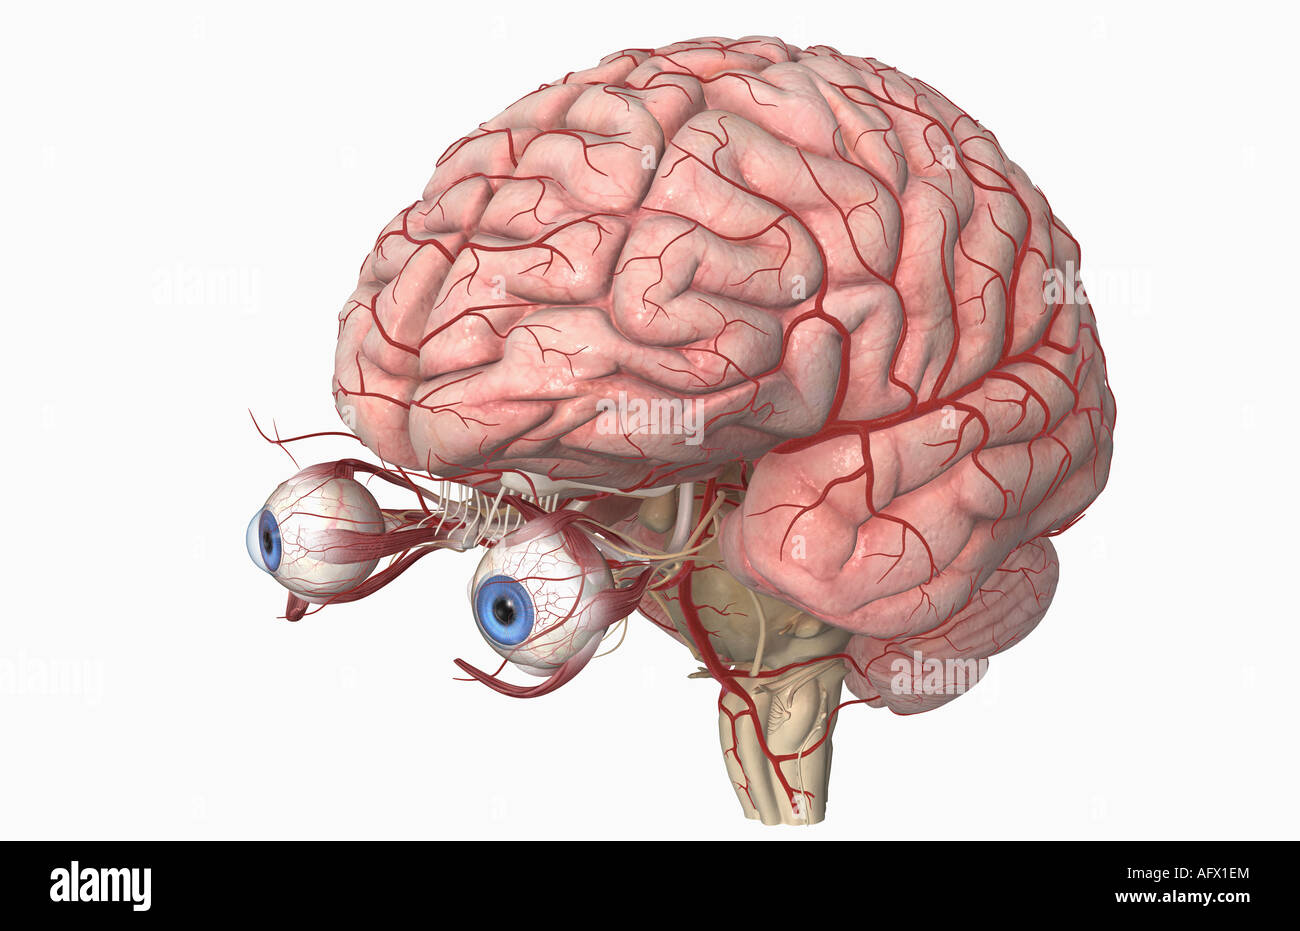 The arteries of the brain and eyes Stock Photo: 14030971 - Alamy